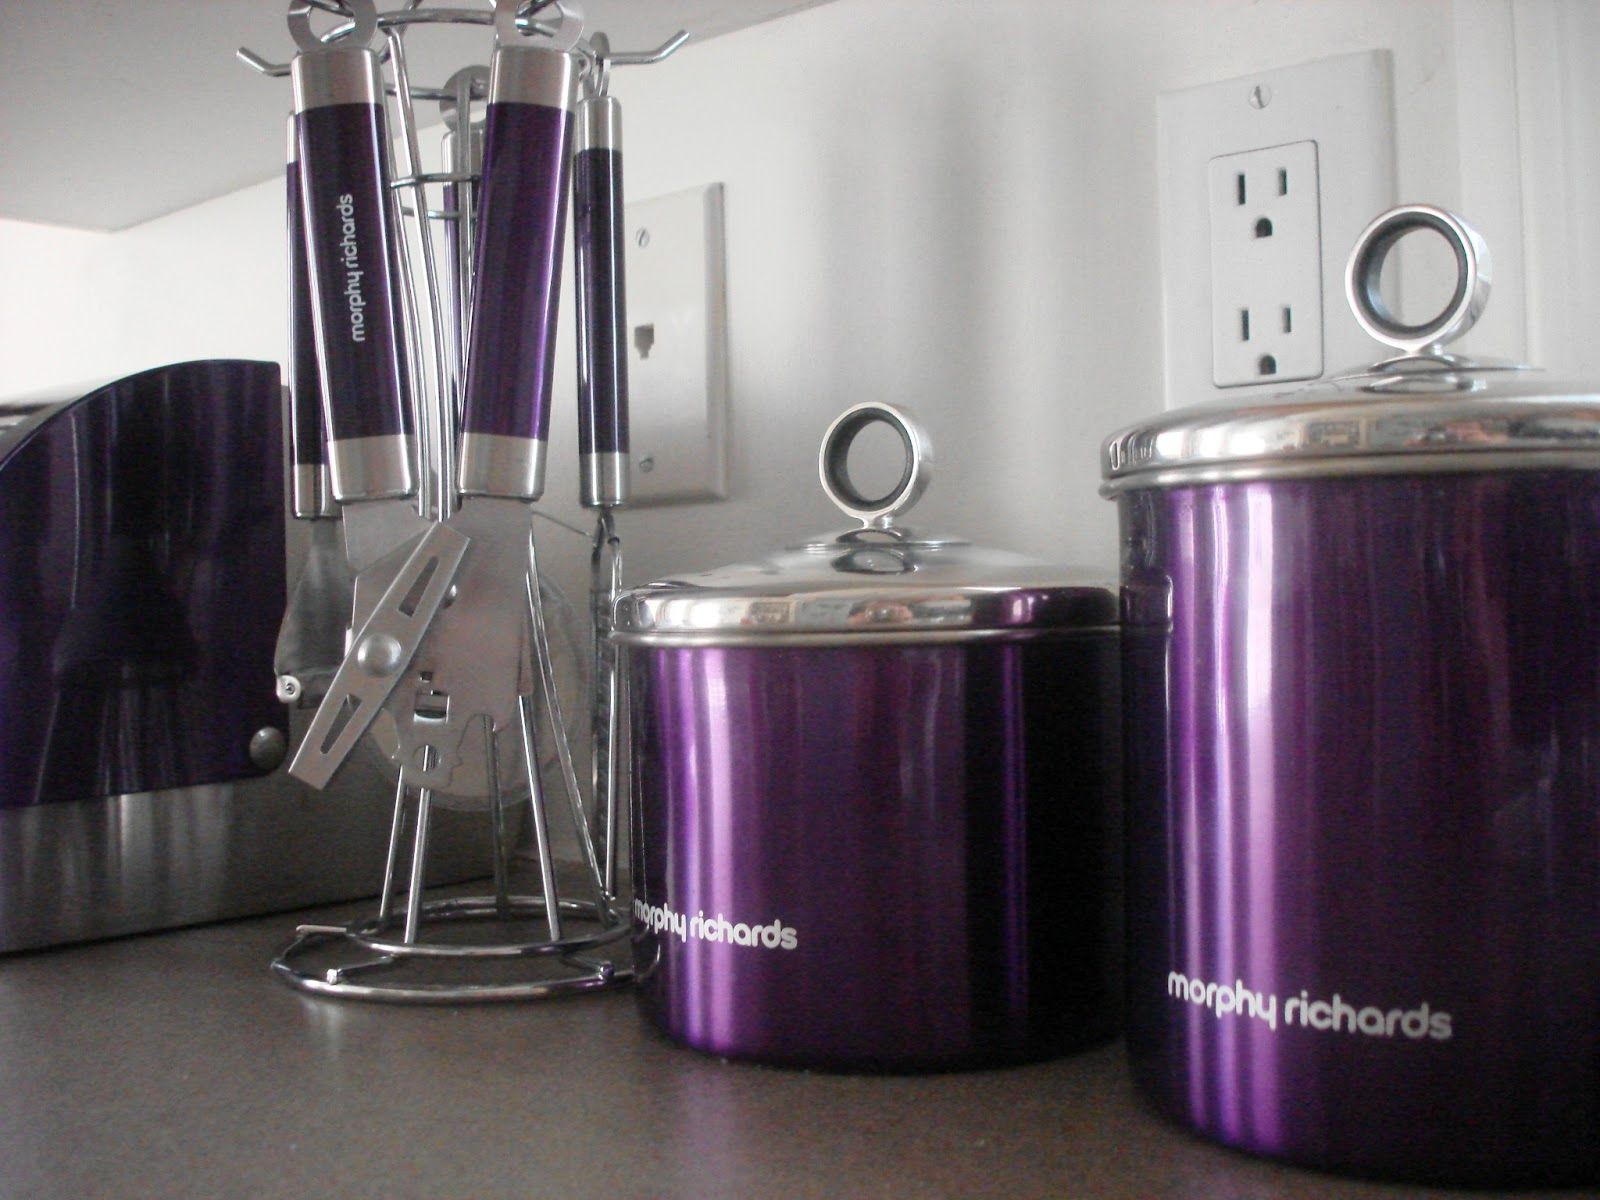 purple kitchen accessories are the kitchen decorating items which built in a purple color as the specific appearance in this case the kitchen accessories - Purple Kitchen Decorating